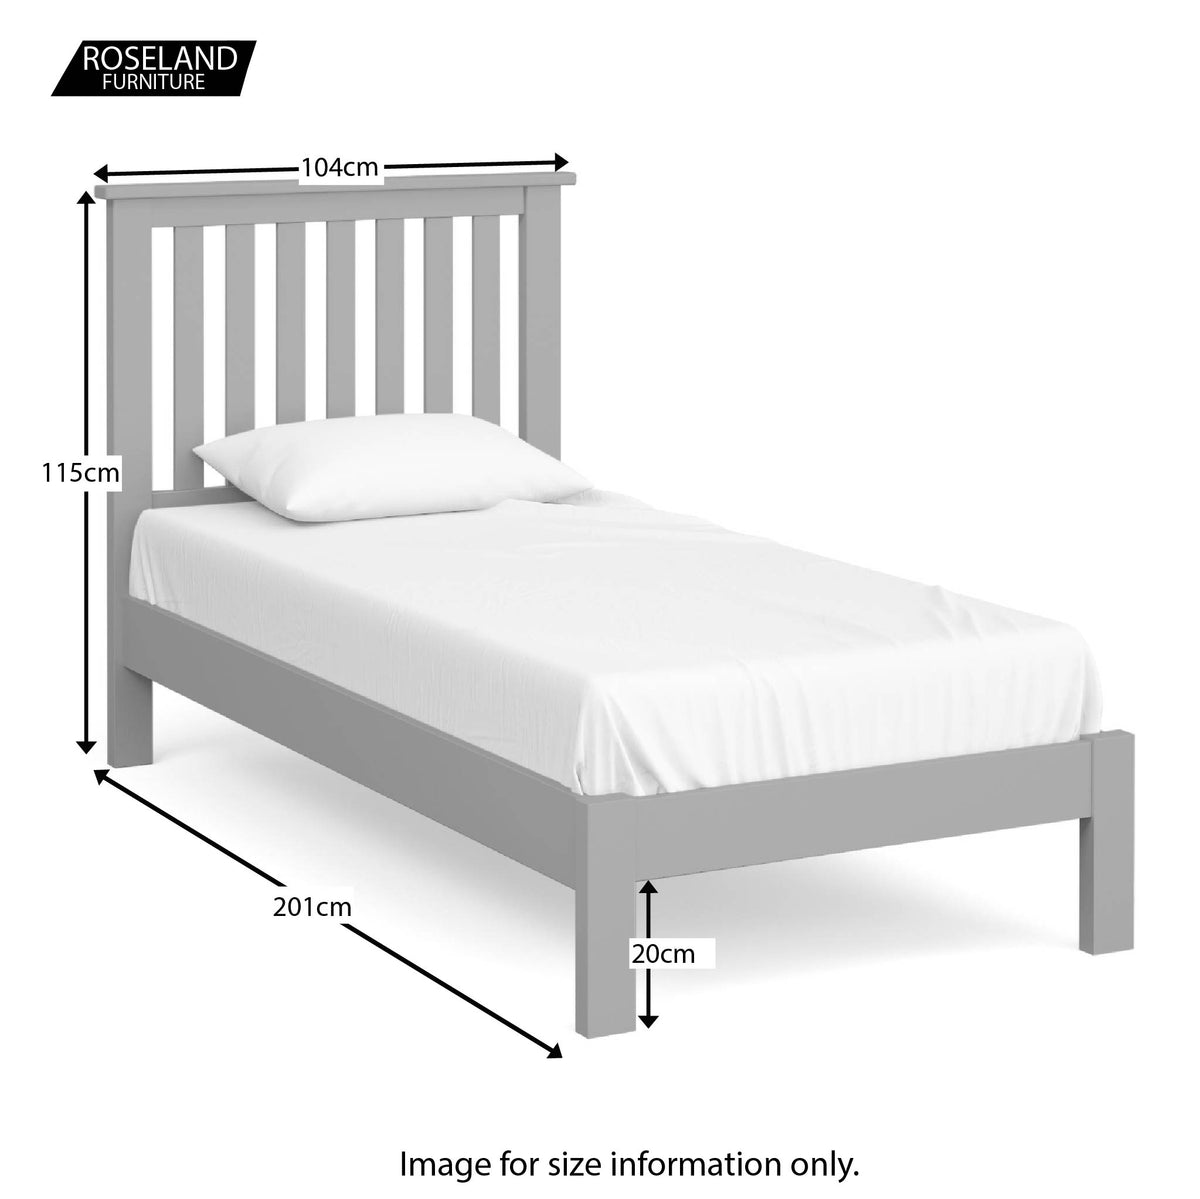 Cornish Grey 3' Single Bed Frame - Size Guide